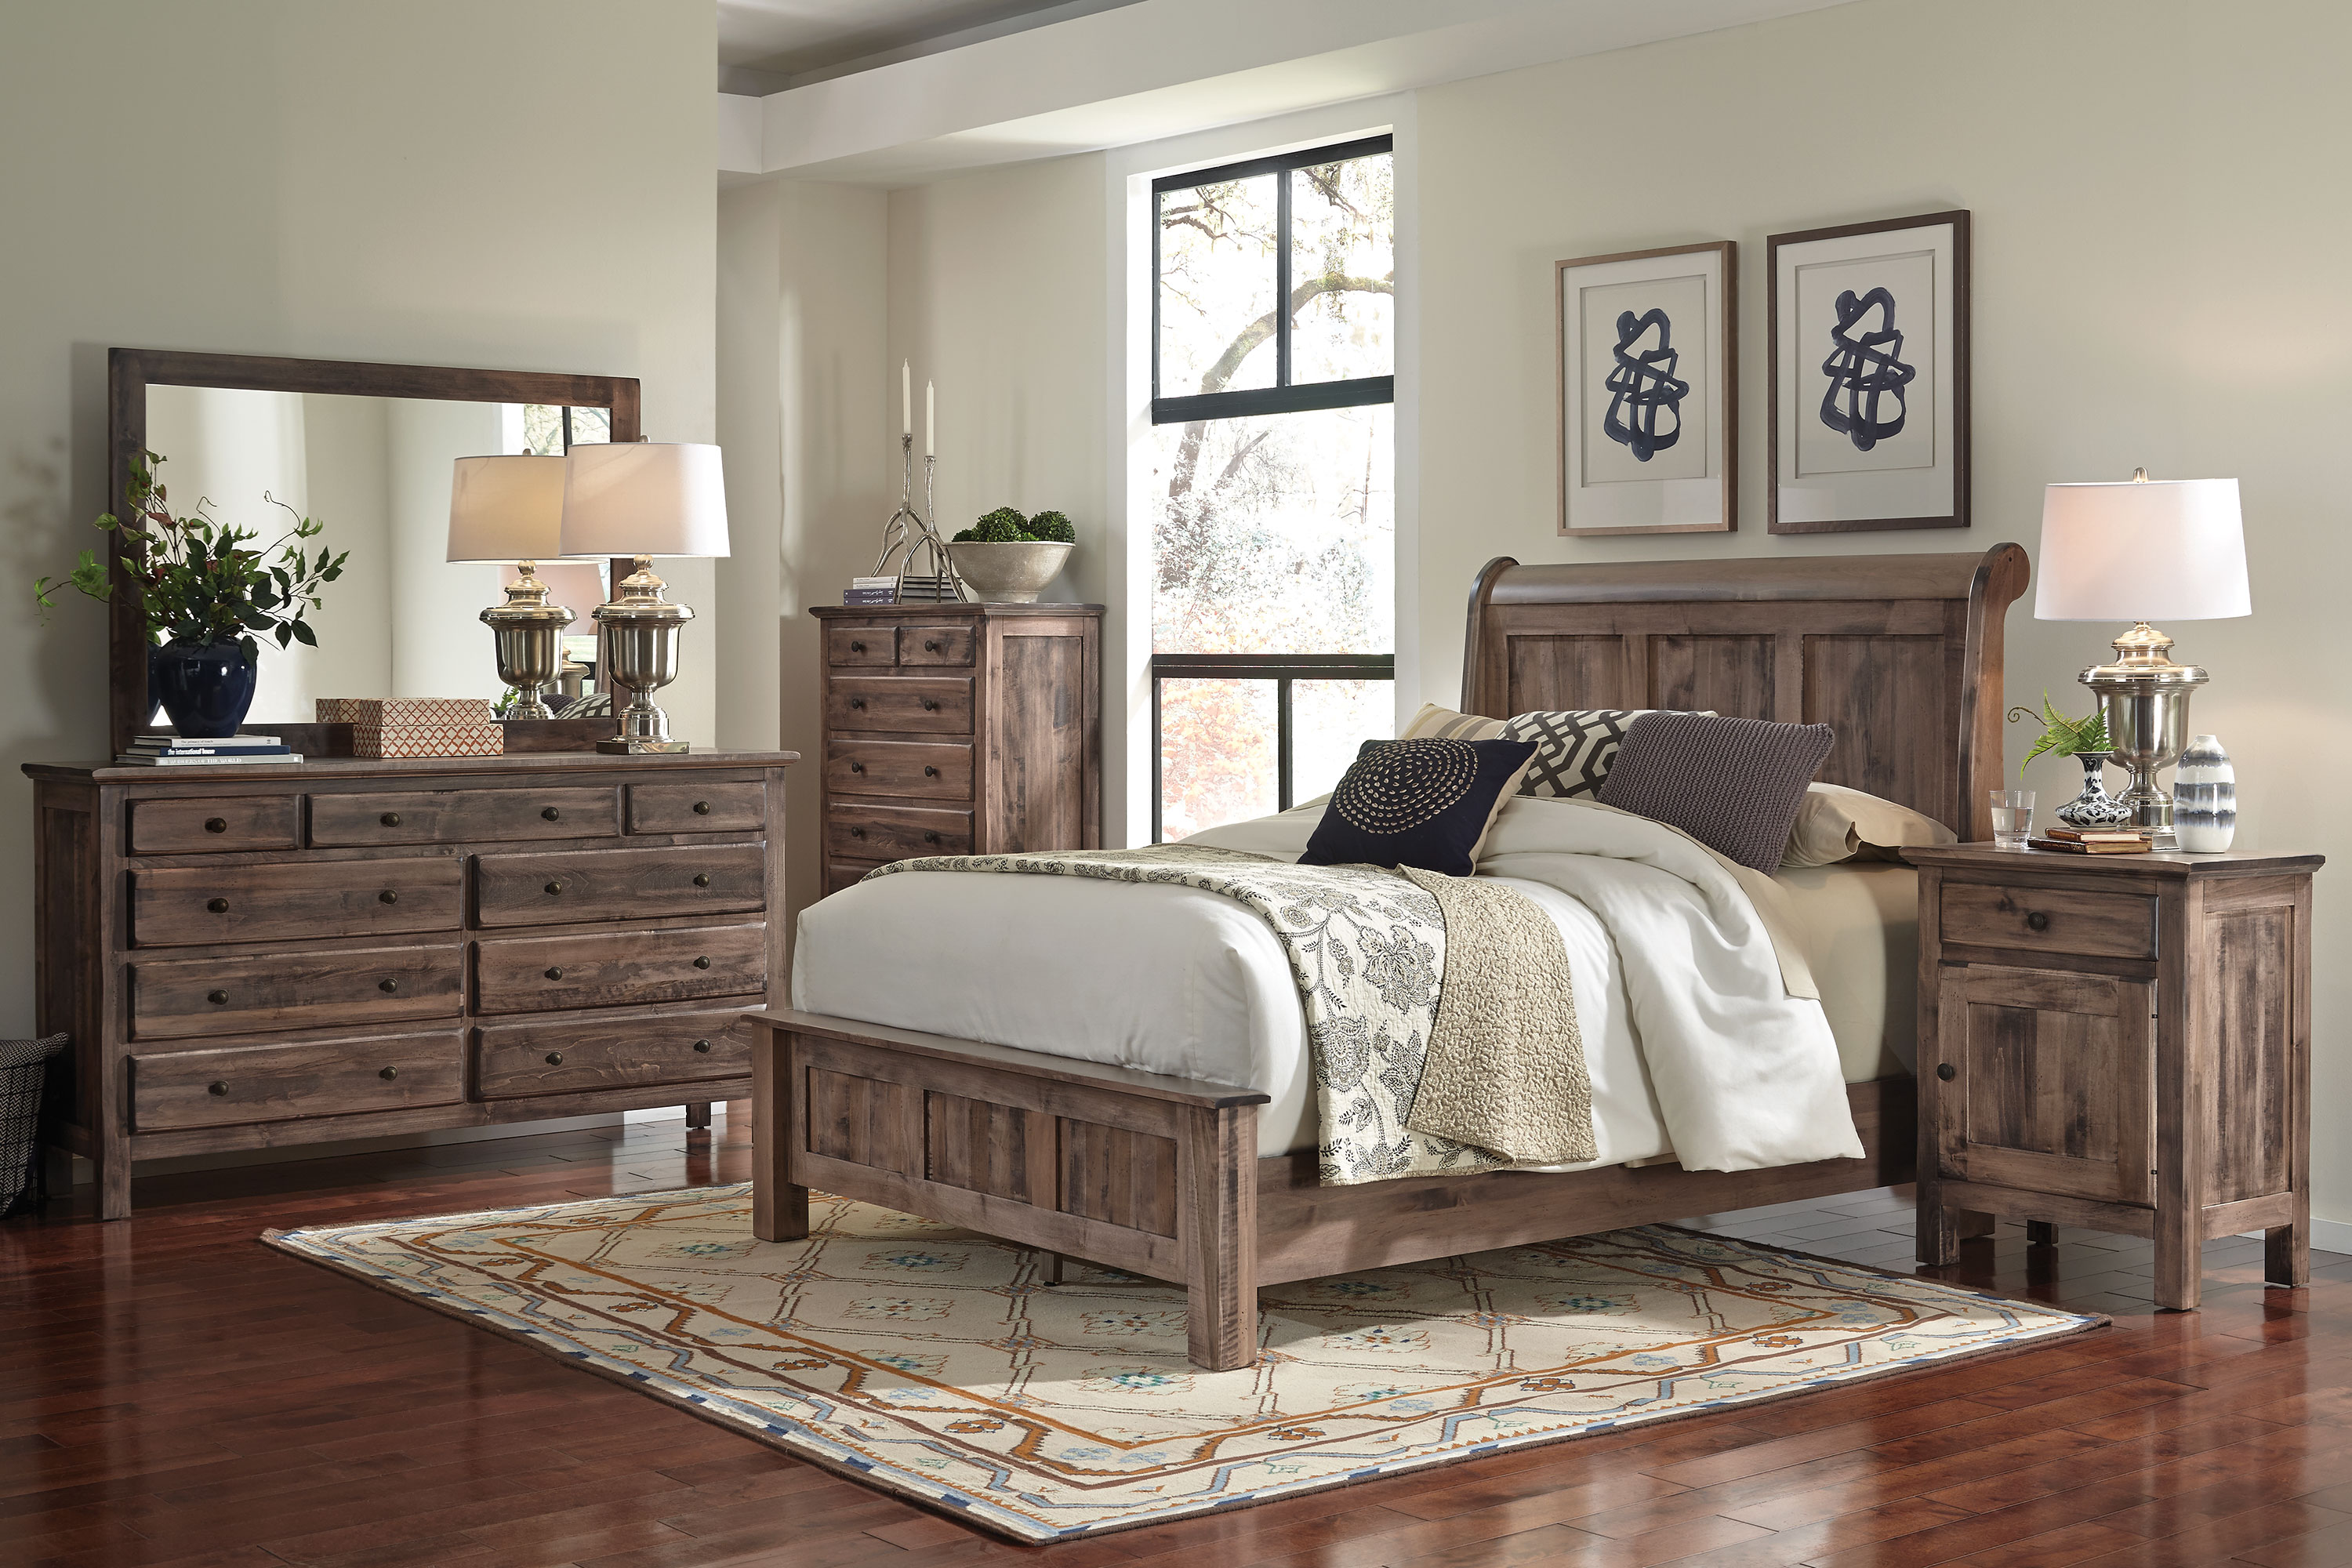 Bedroom Furniture - Lewiston 4 Piece Queen Bedroom